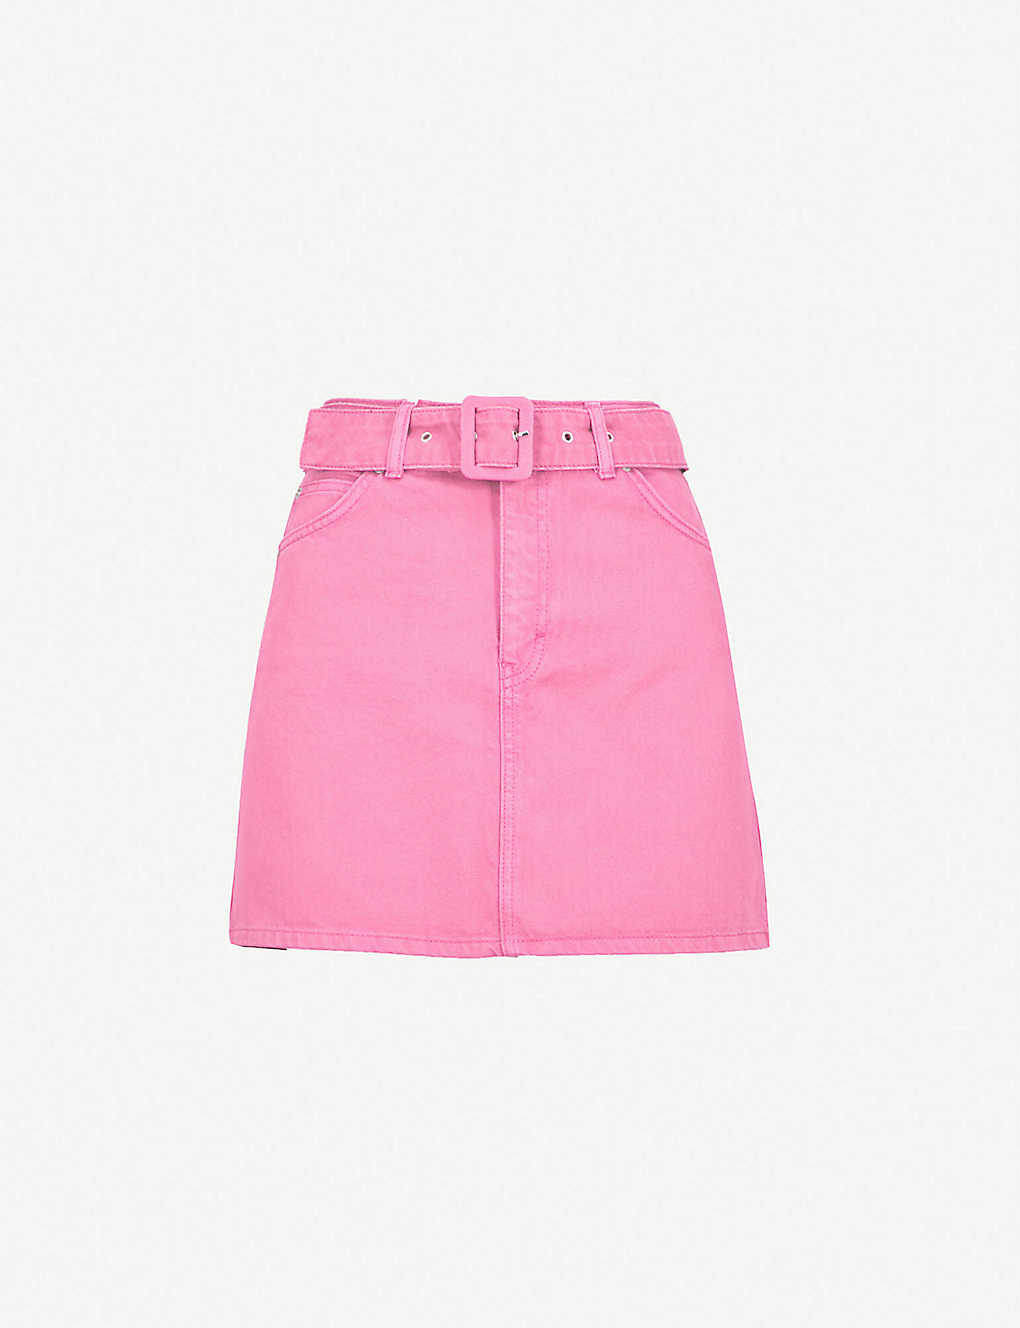 99c5ea6e1d TOPSHOP - Belted high waisted denim skirt | Selfridges.com